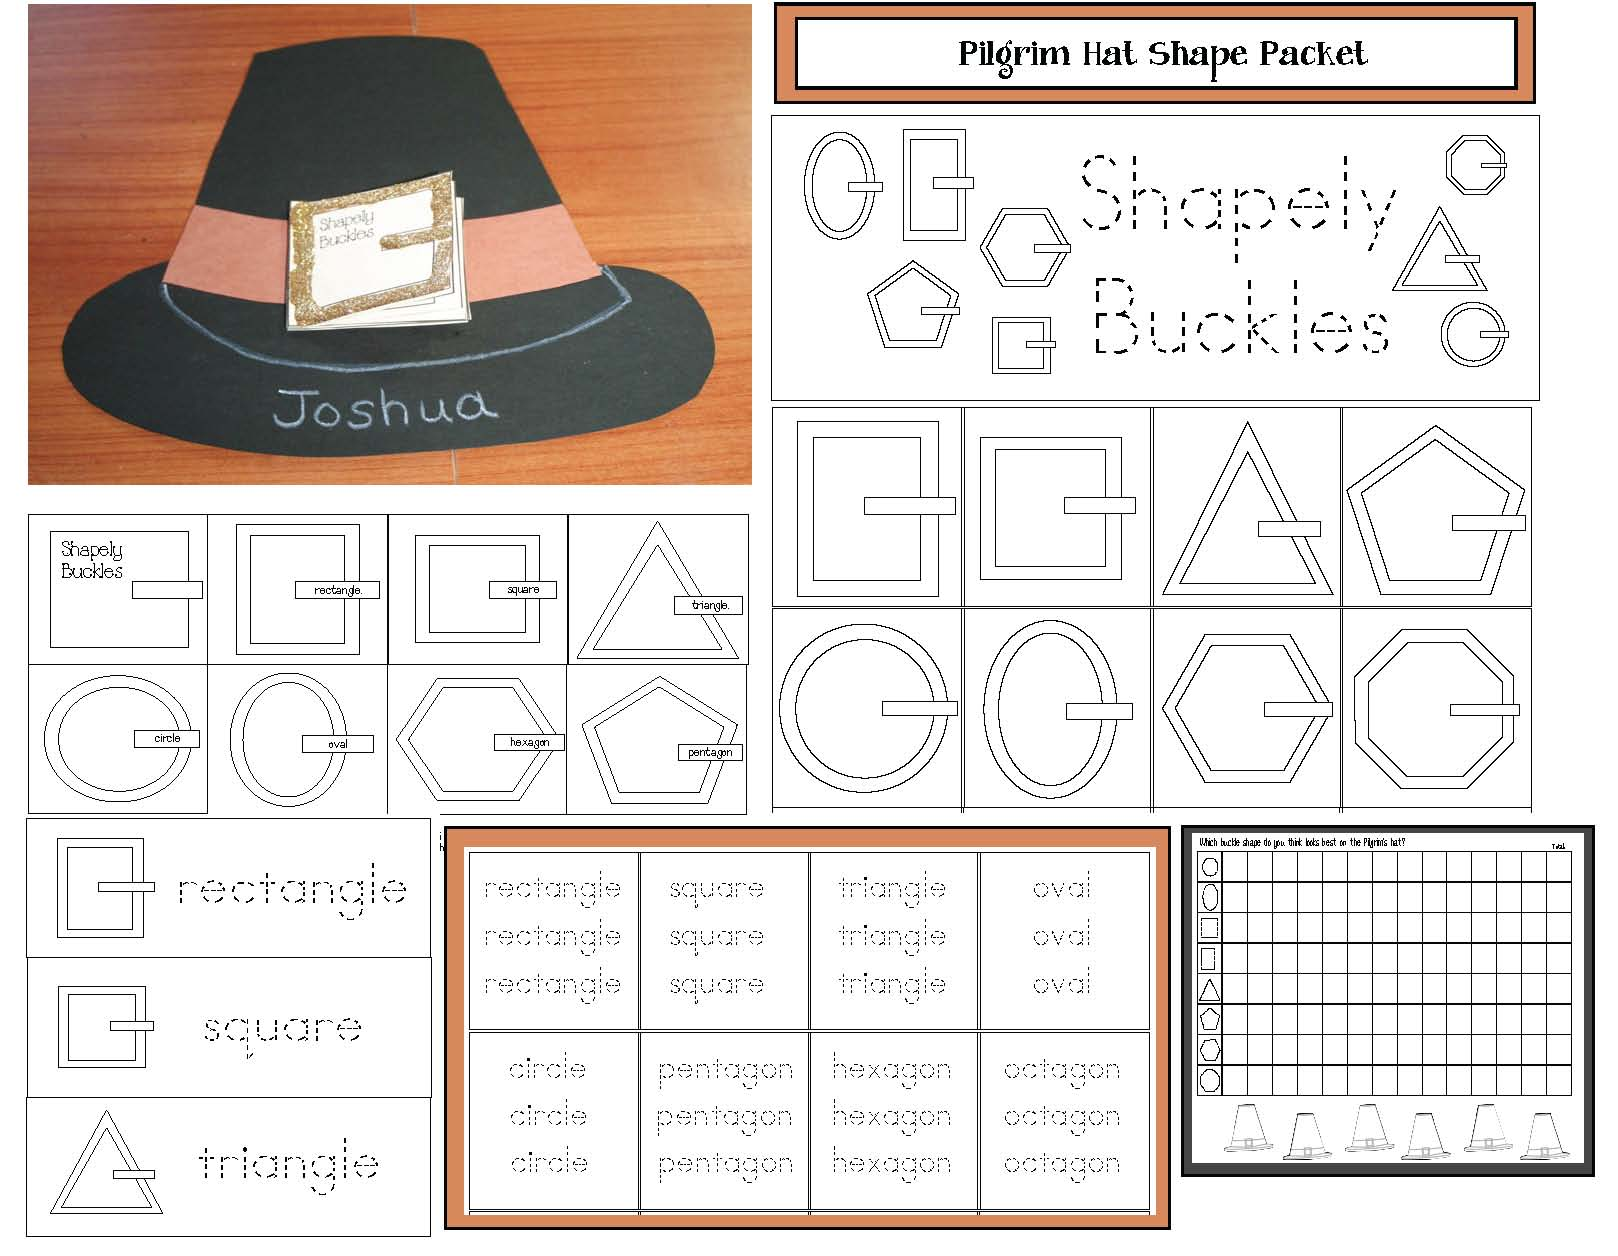 Pilgrim costumes, pilgrim clothes, pilgrim crafts, pilgrim games, pilgrim activities, turkey shapes, turkey games, turkey activities, turkey crafts, pilgrim crafts, shape games, shape activities, shape lessons, shape cards,